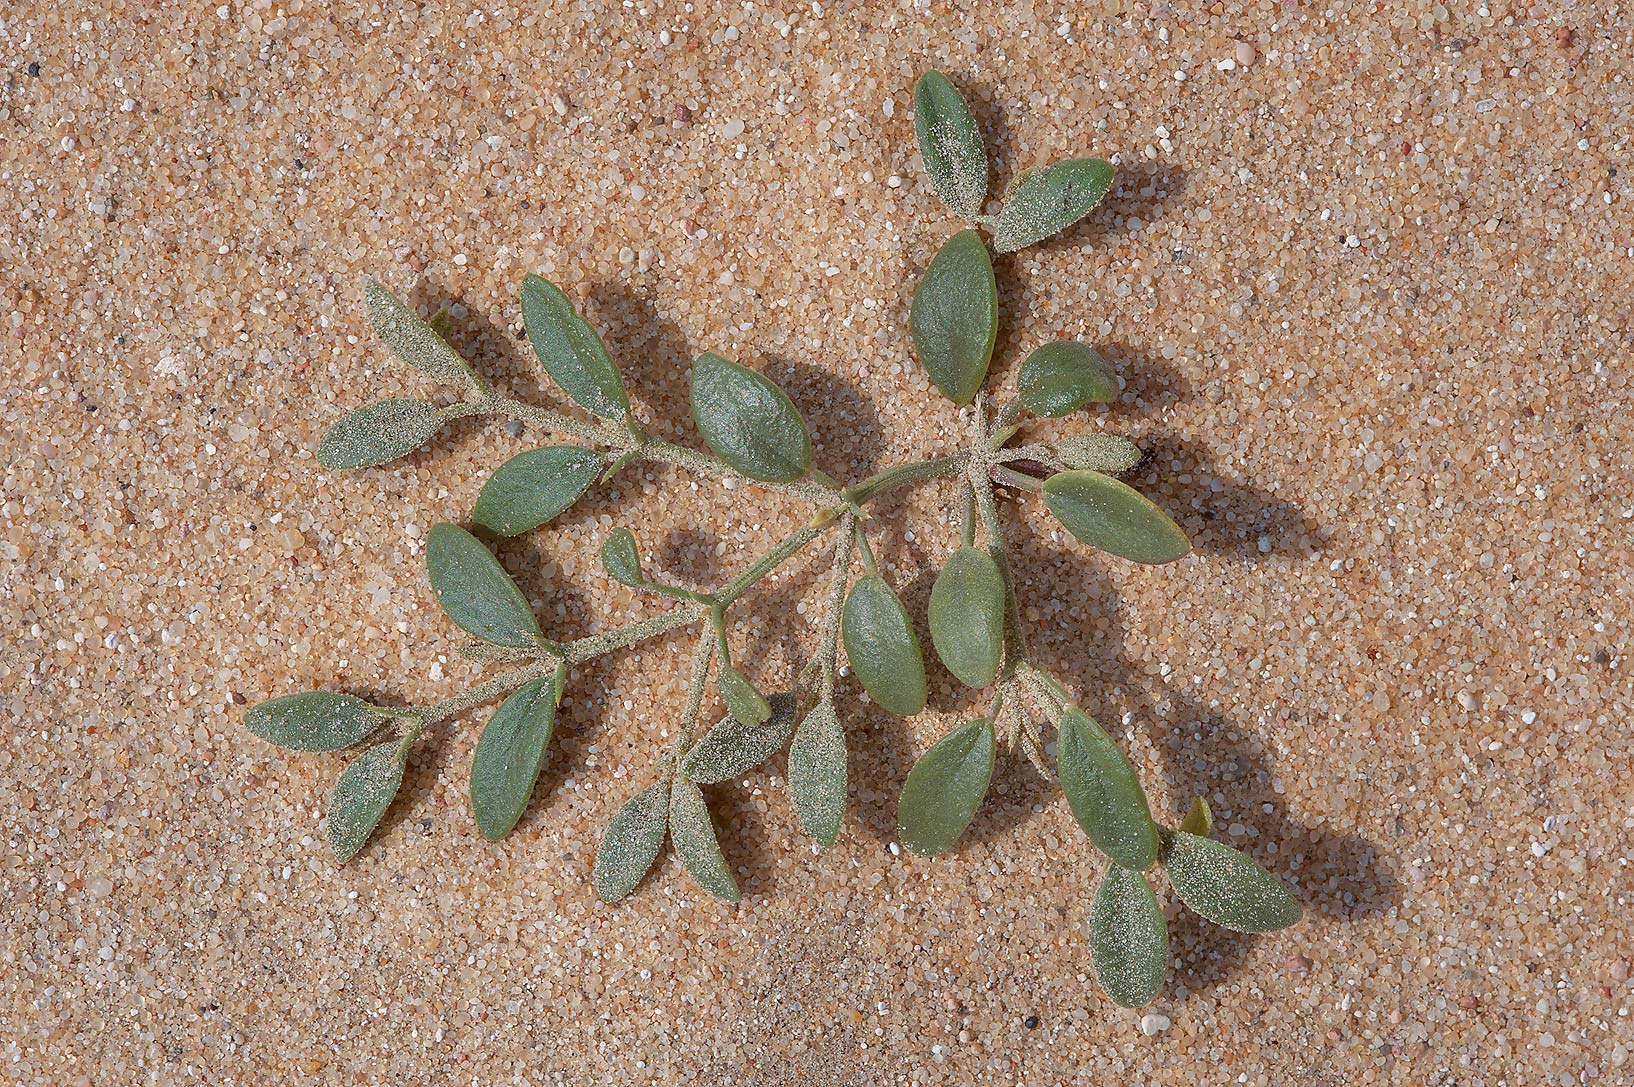 Seedling of Fagonia ovalifolia on sand in area of Jebel Al-Nakhsh in south-western Qatar